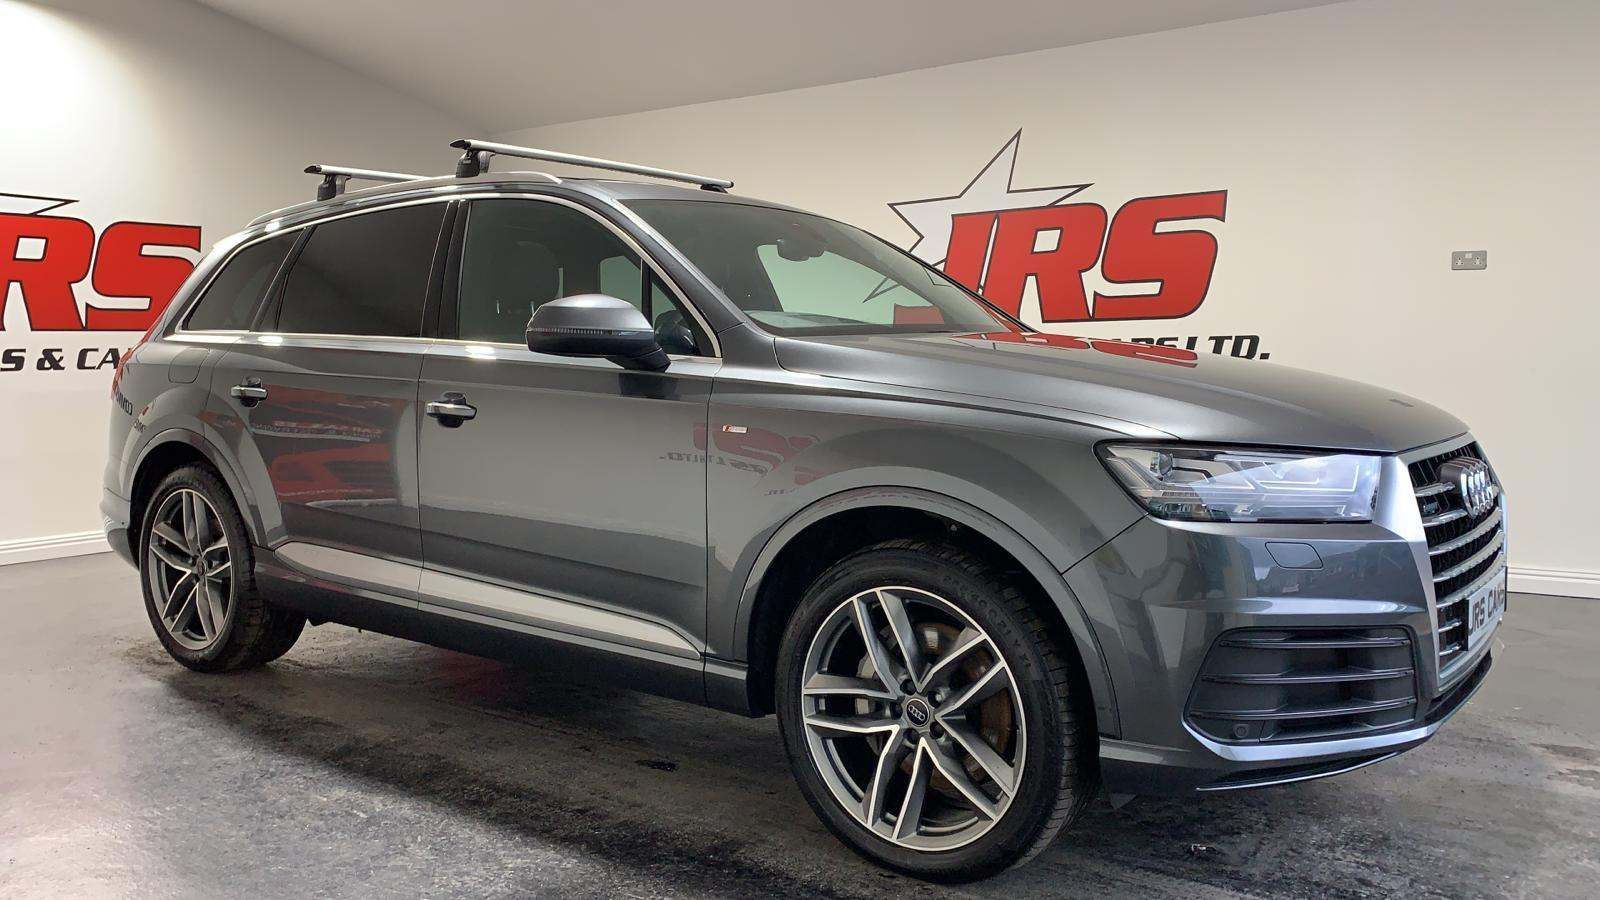 2016 AUDI Q7 3.0 TDI V6 S line Tiptronic quattro (s/s) Diesel Automatic Virtual Cockpit – Pan Roof – J R S Commercials And Cars Dungannon full